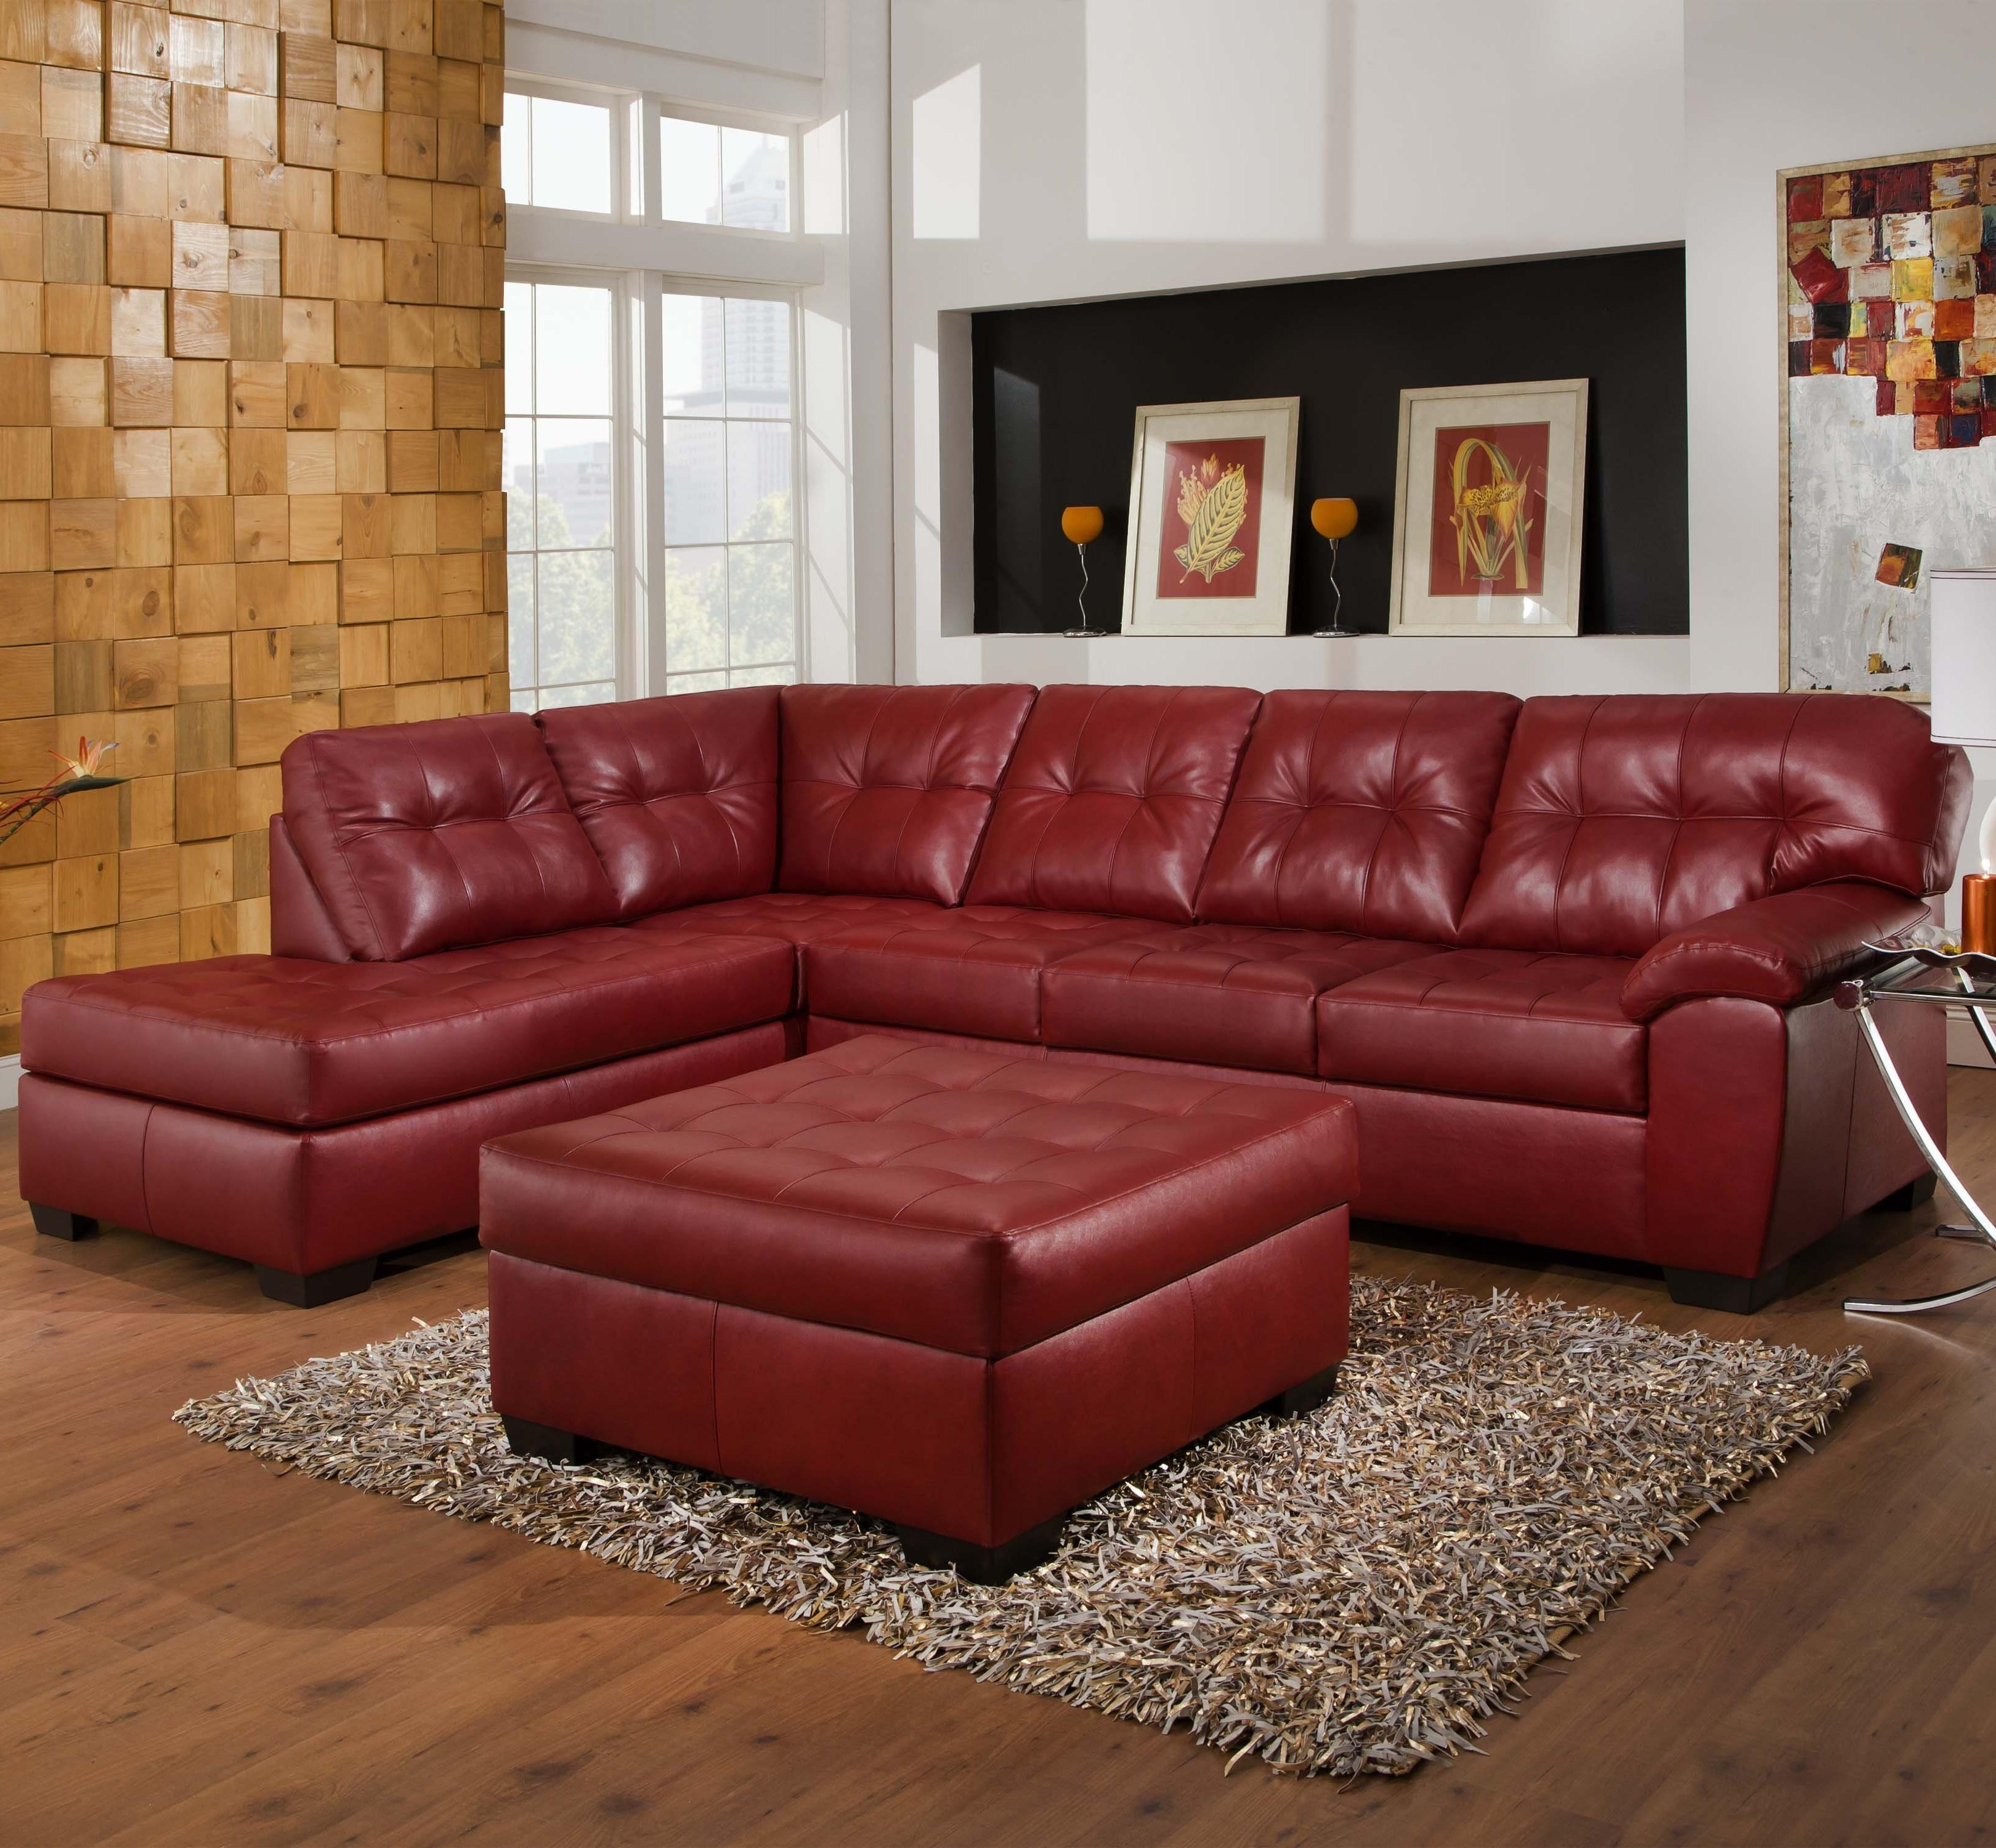 Sectional Sofas At Birmingham Al Throughout Favorite Simmons Upholstery 9569 2 Piece Sectional With Tufted Seats & Back (View 14 of 20)